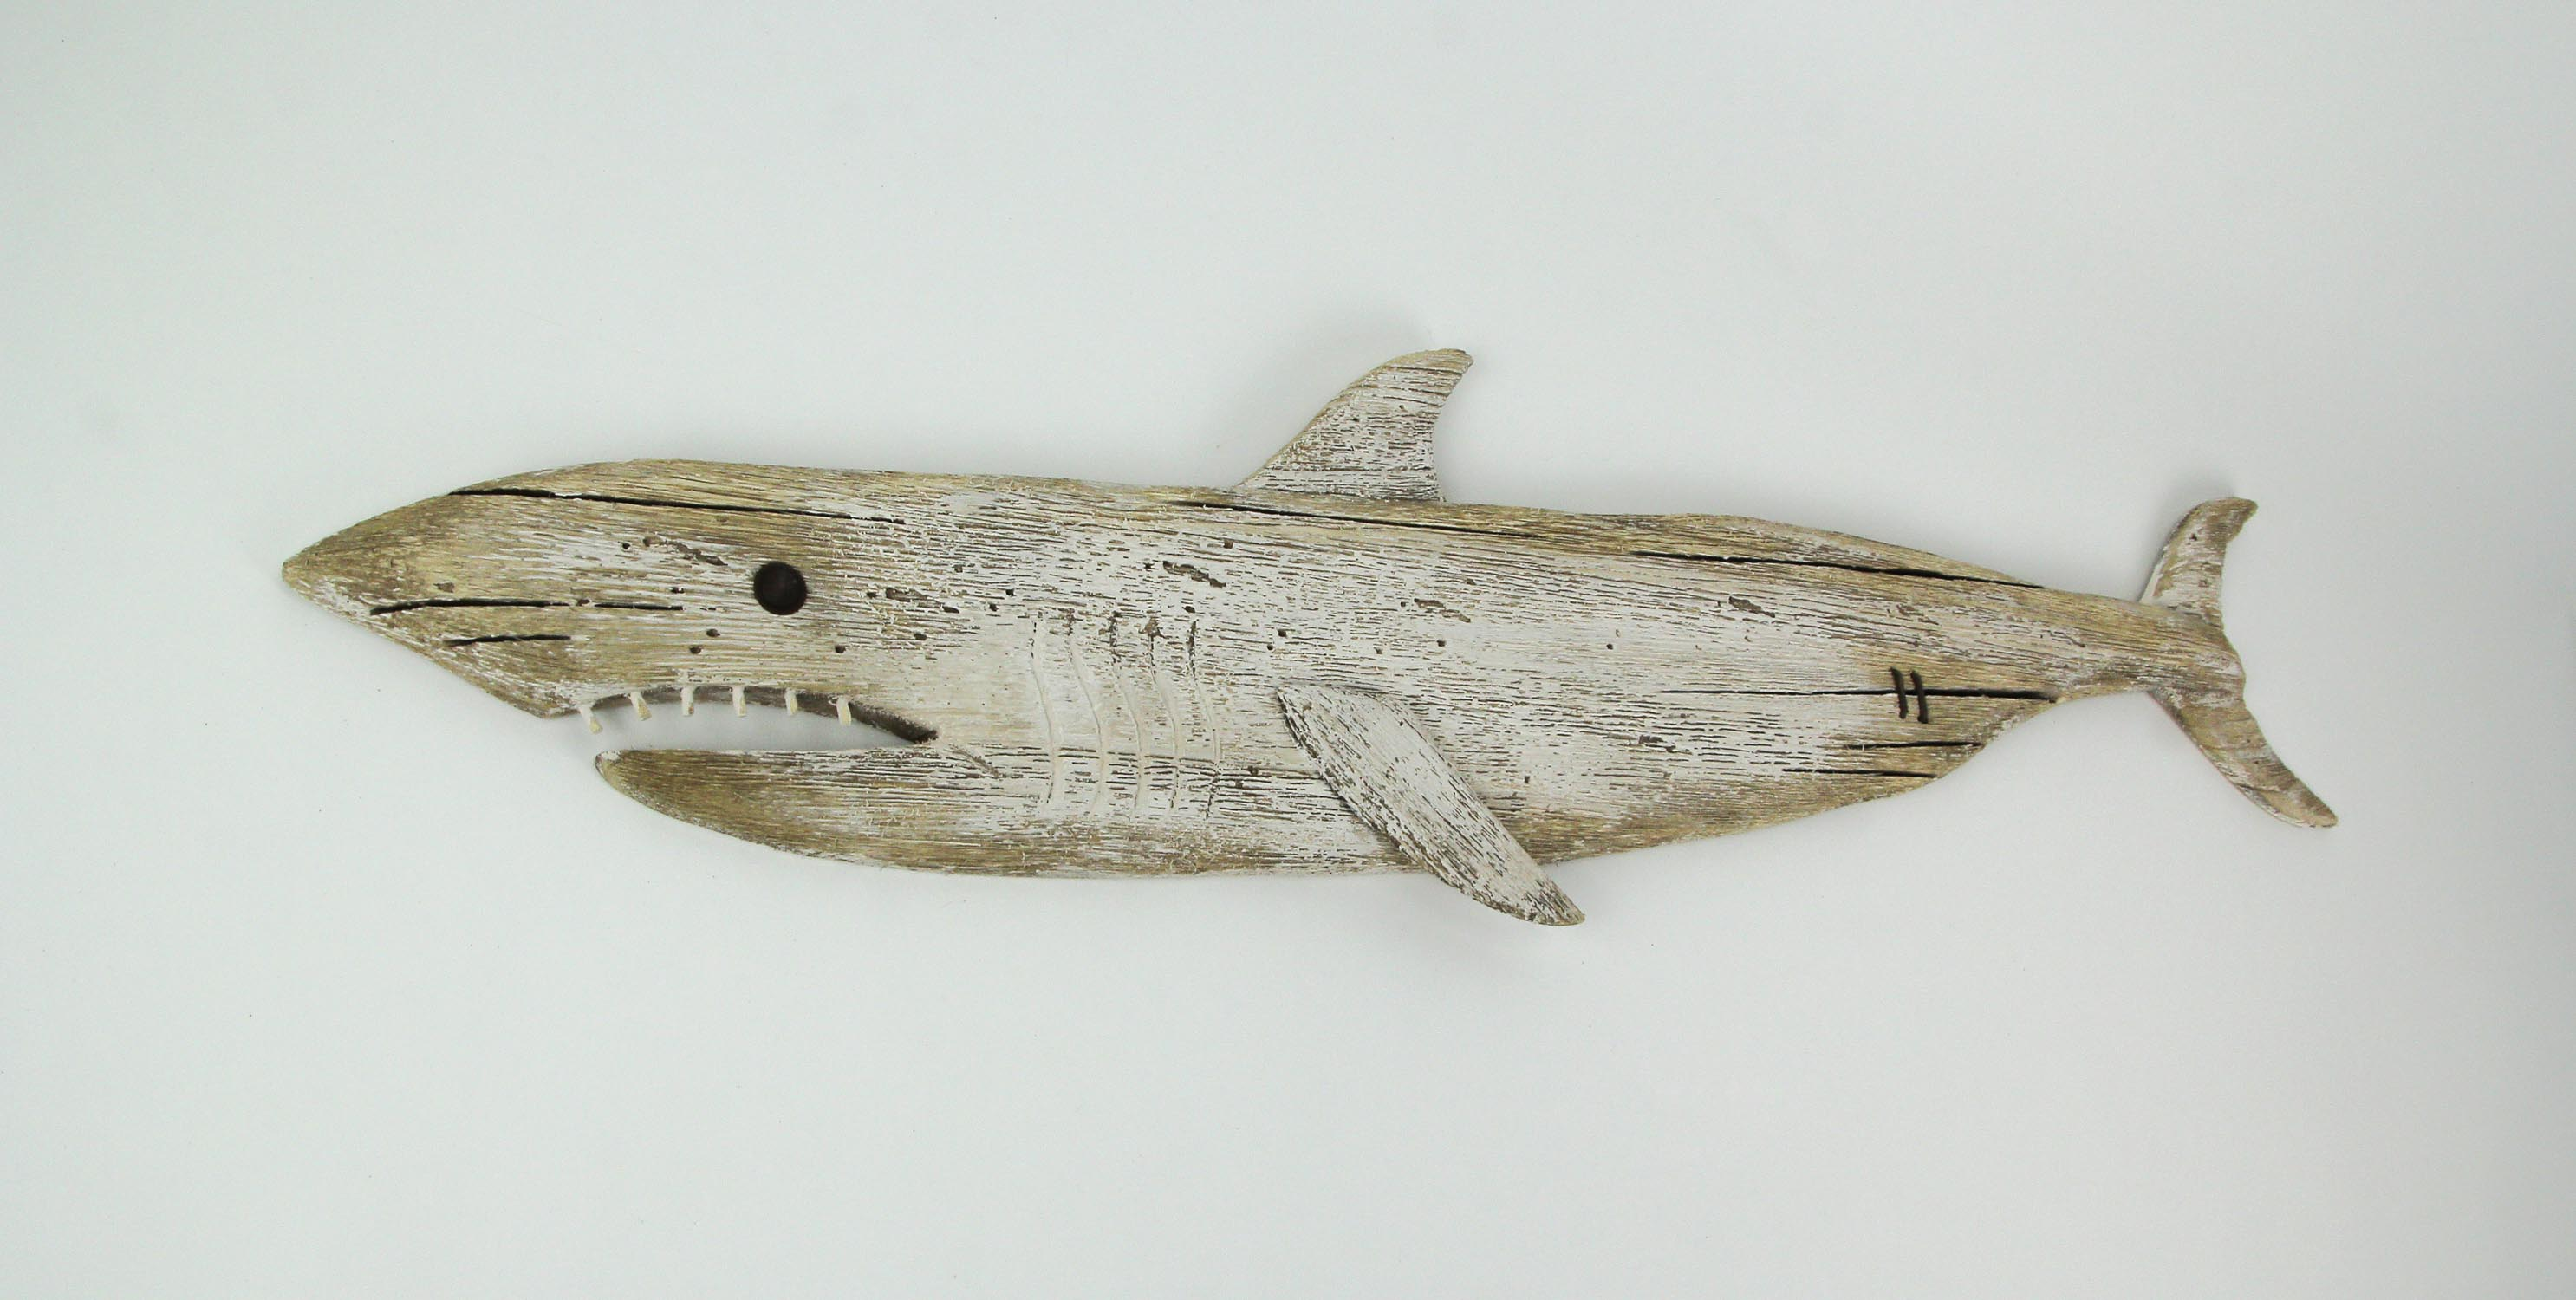 thumbnail 6 - Carved Recycled Wood Great White Shark Wall Sculpture 36 Inches Long